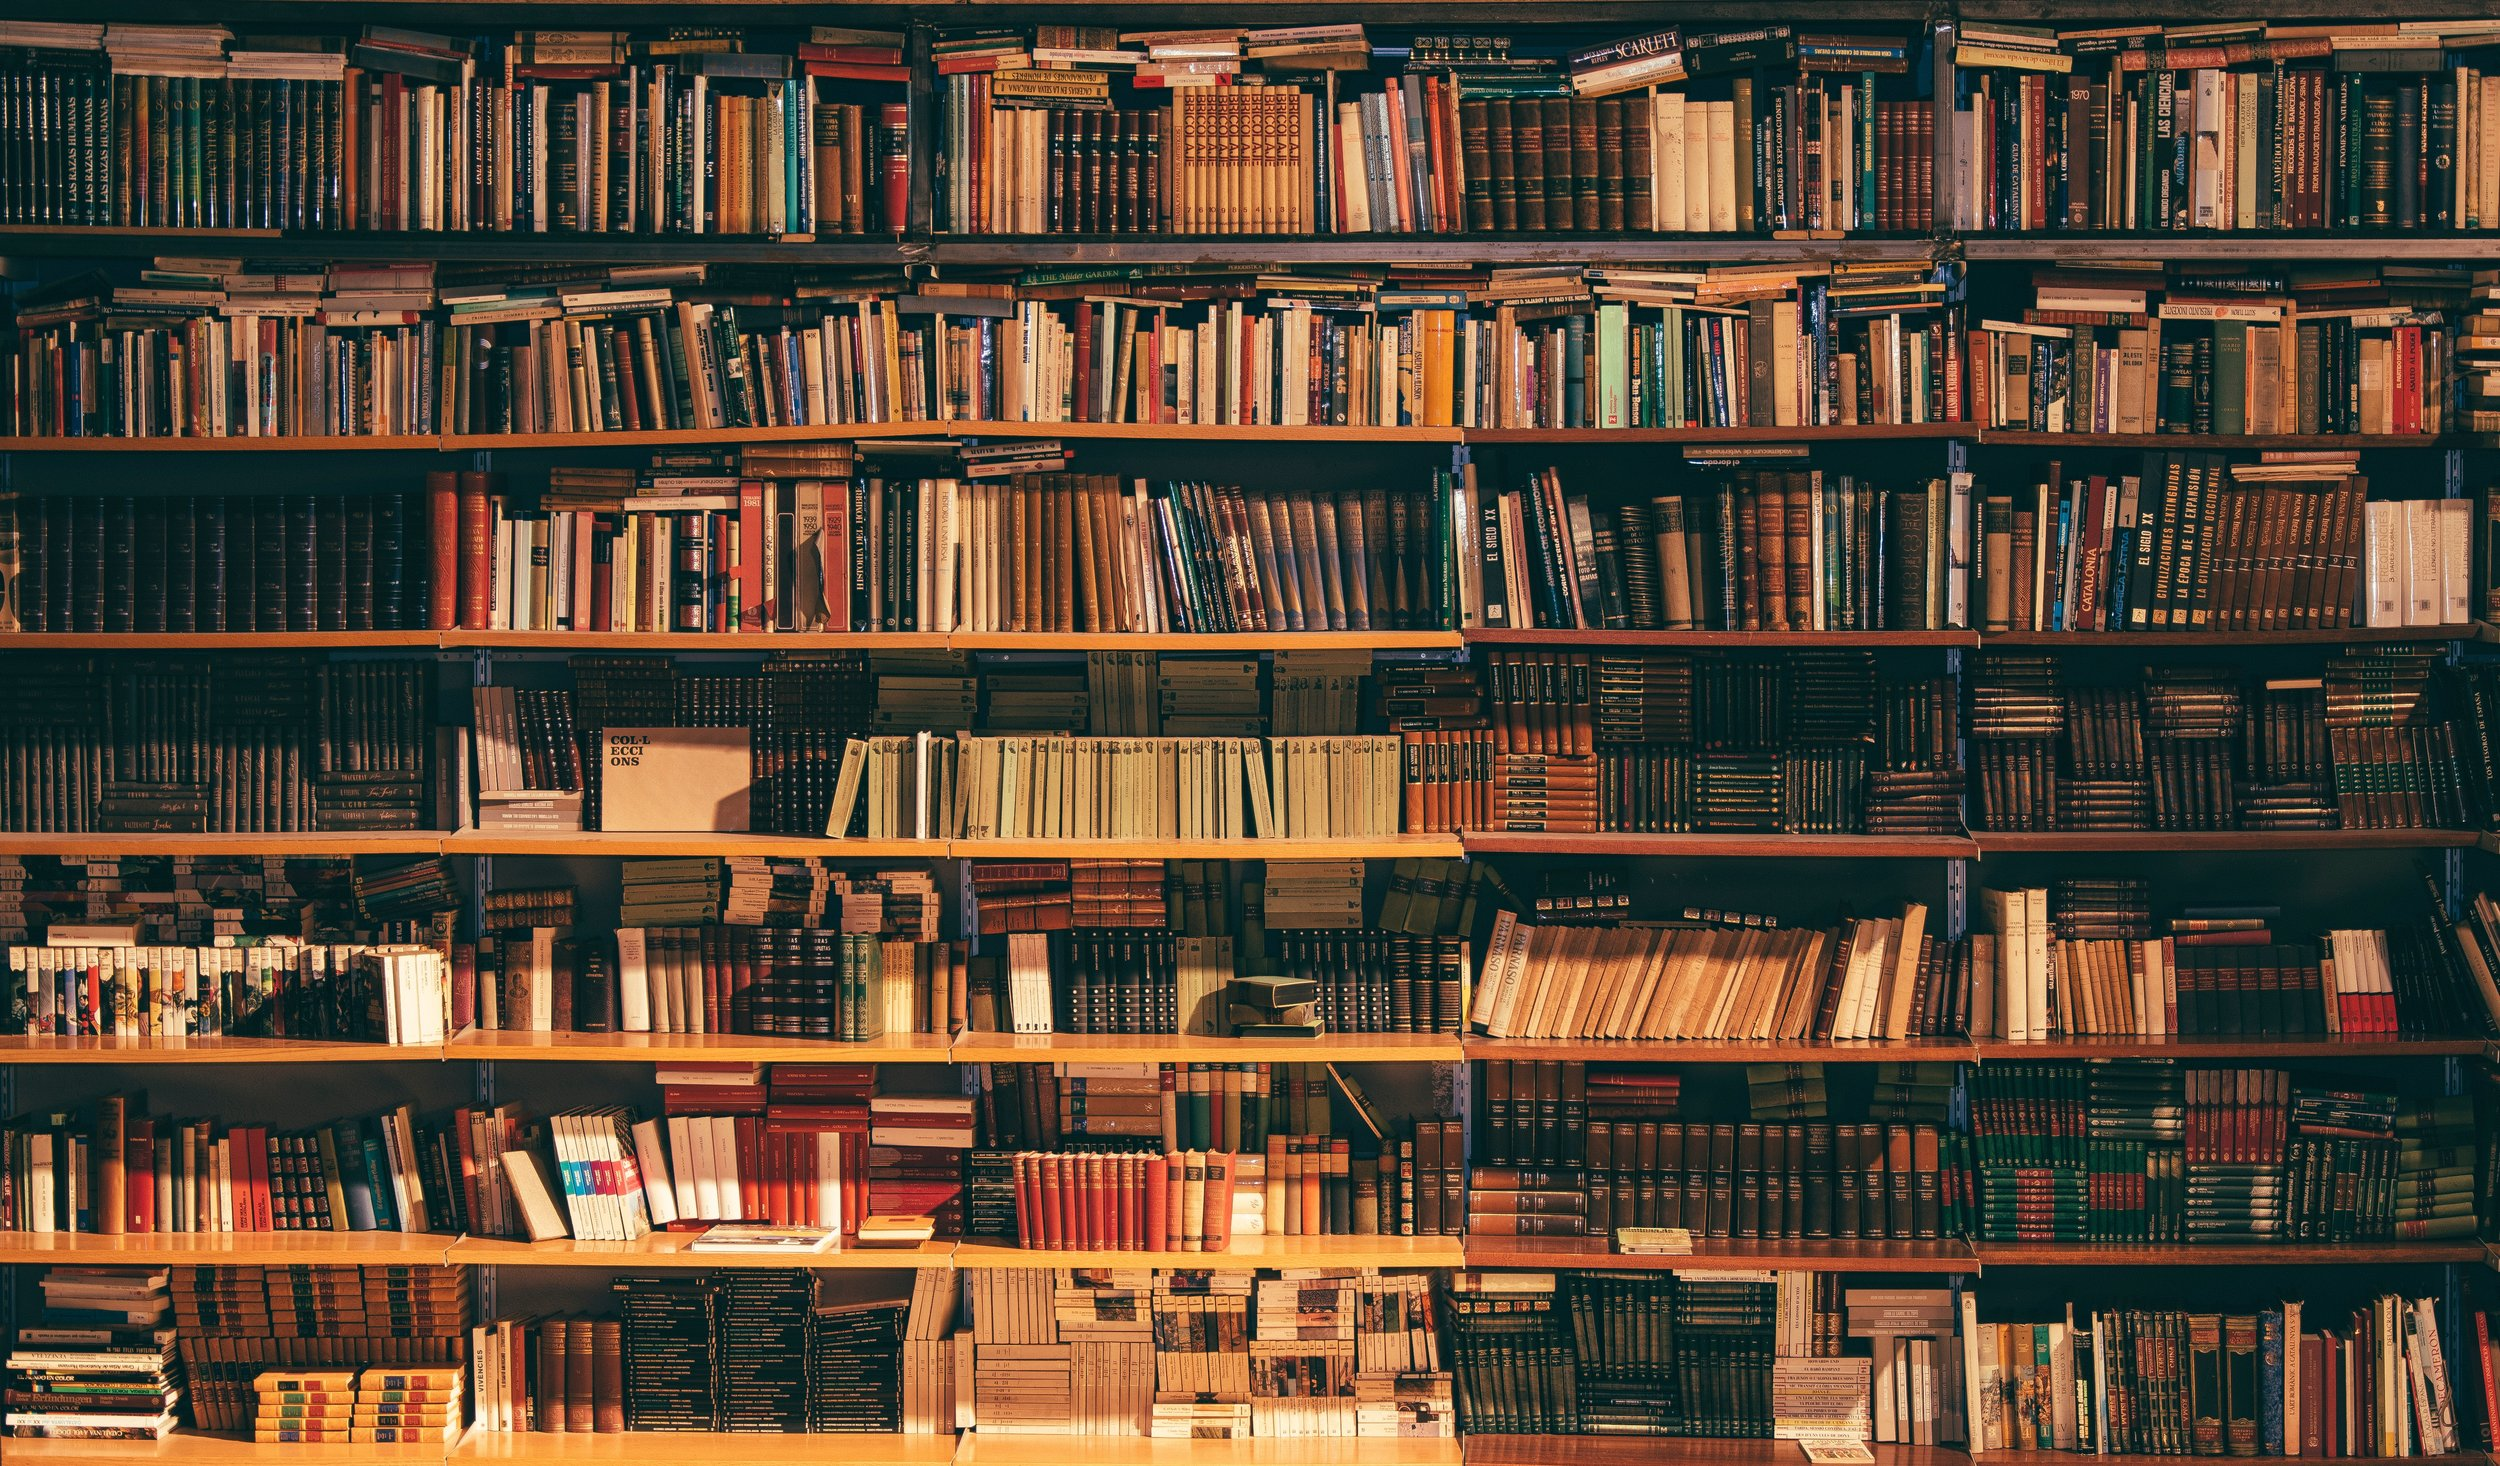 Picture is of a large bookcase full of books.